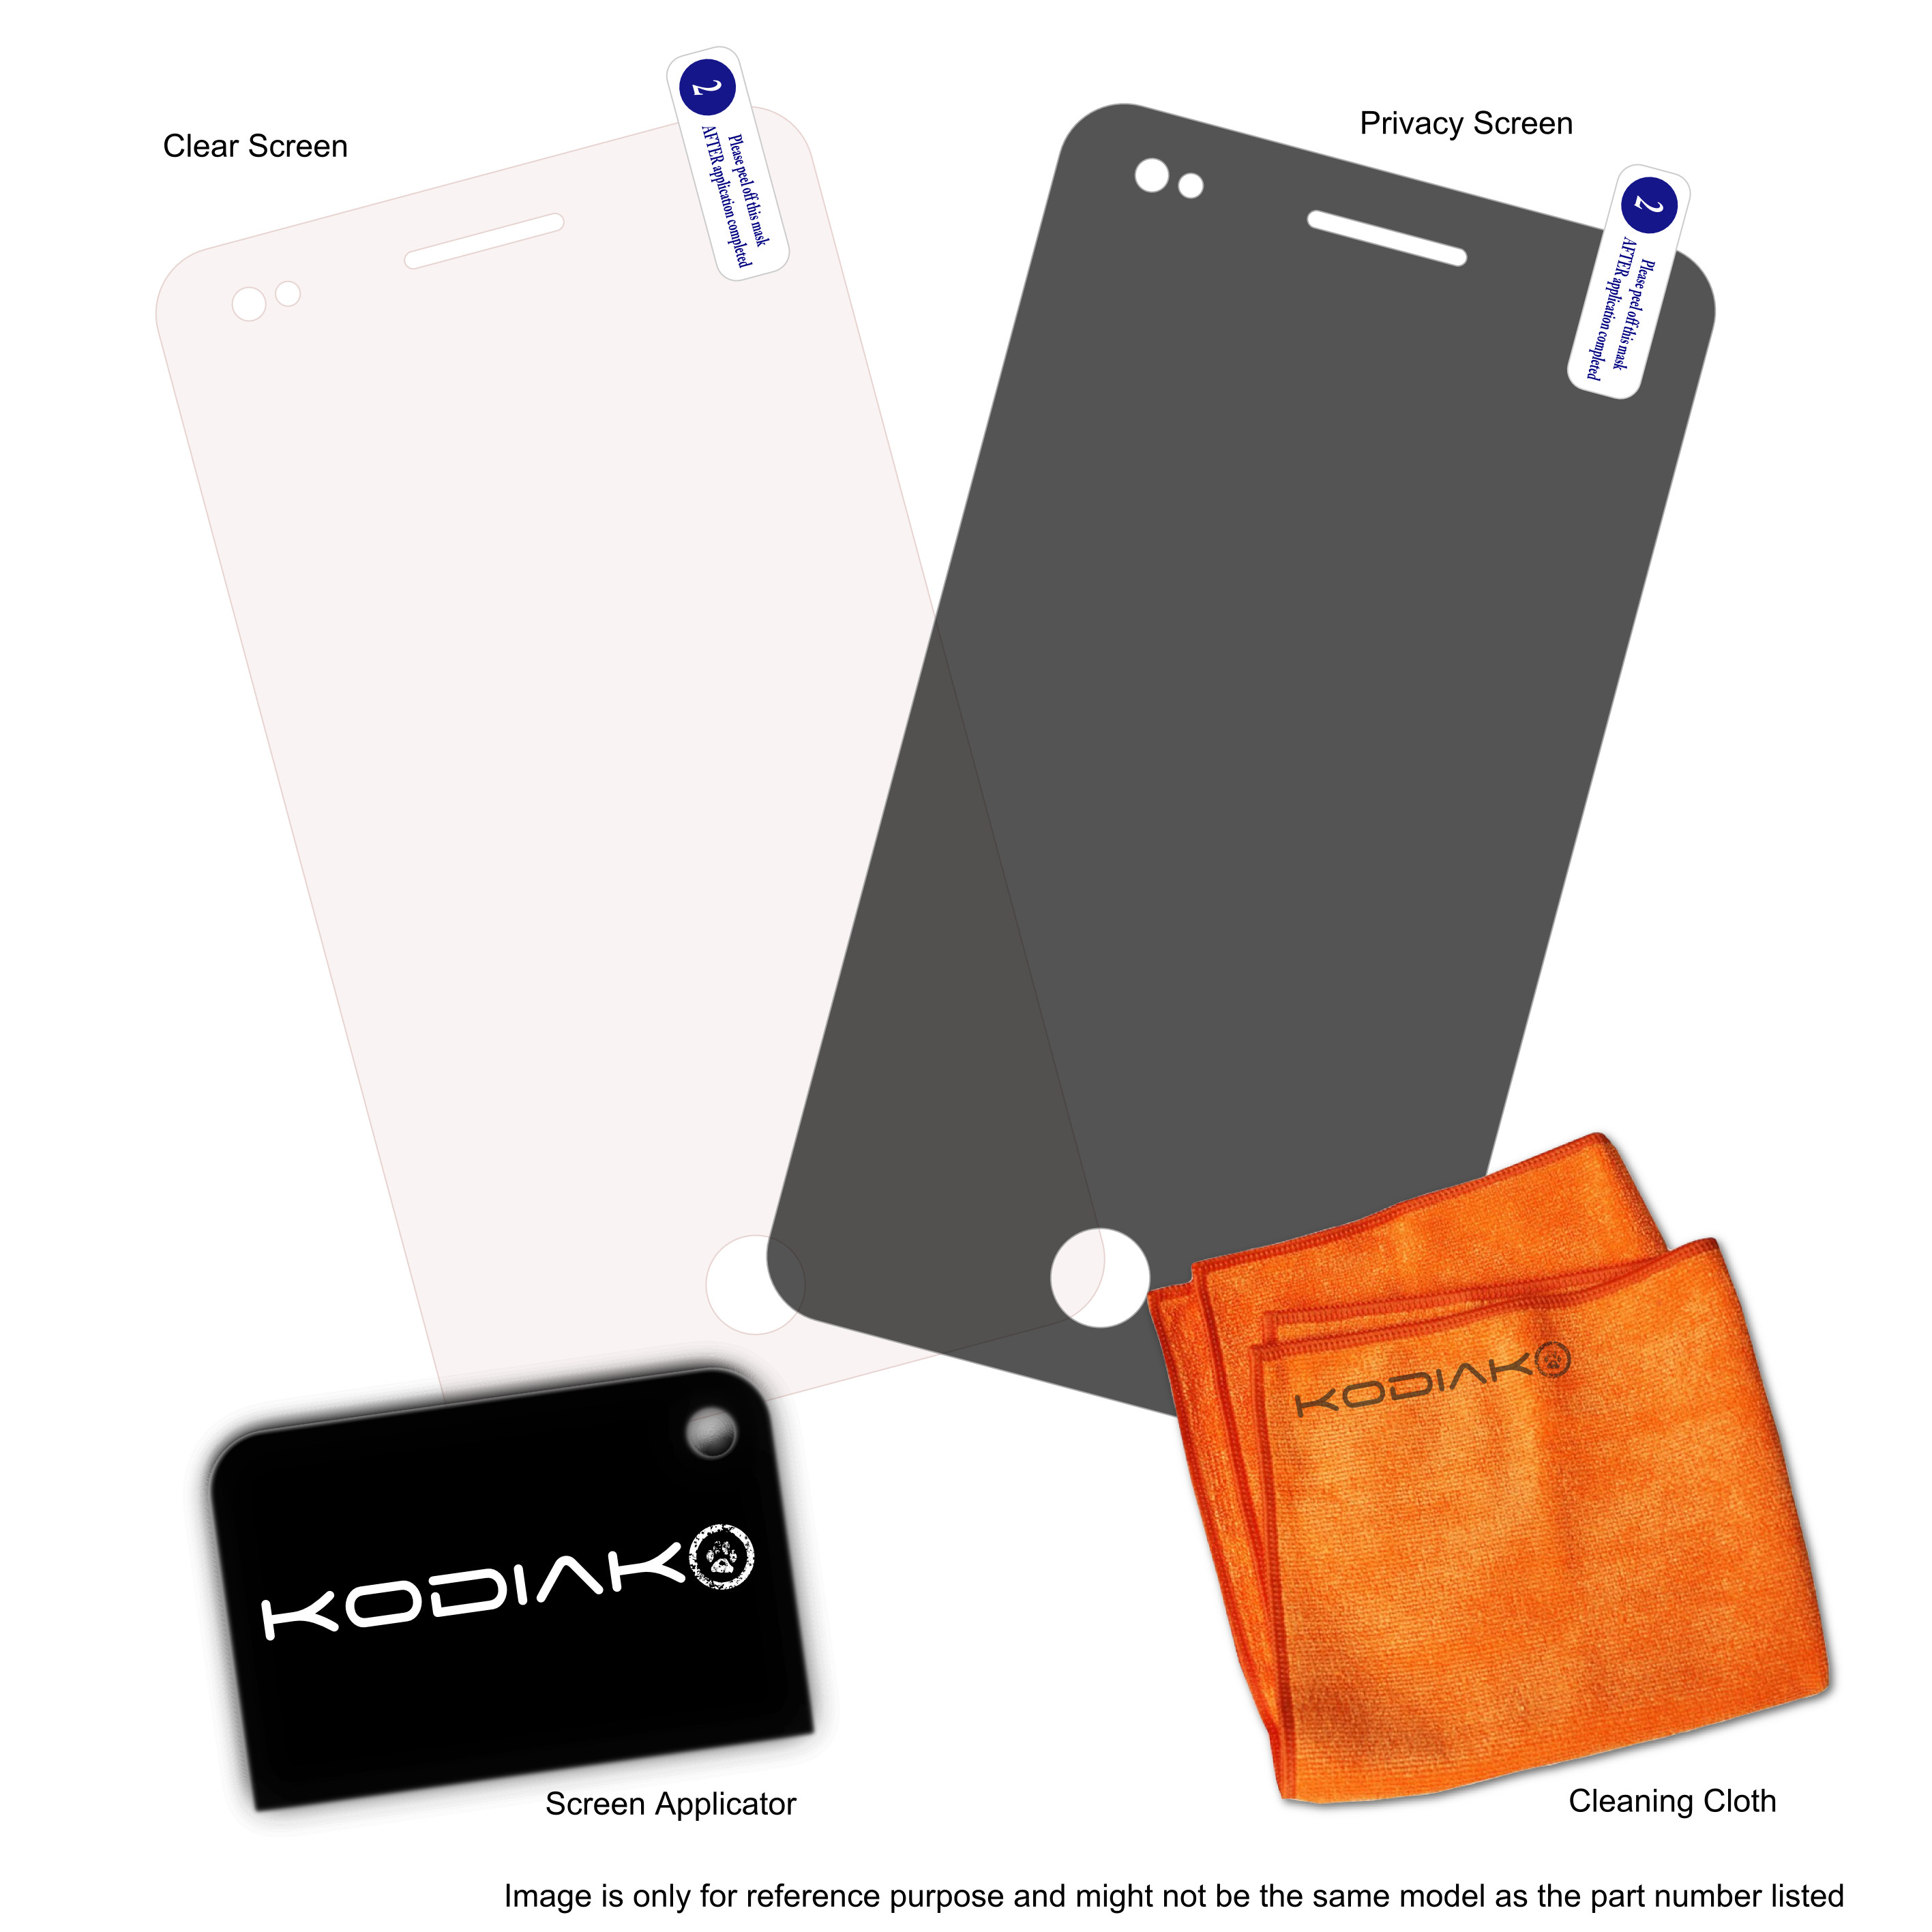 Original Kodiak Screen Protector Sony Ericsson Xperia Play iProtect 2-Package (Clear + Privacy)